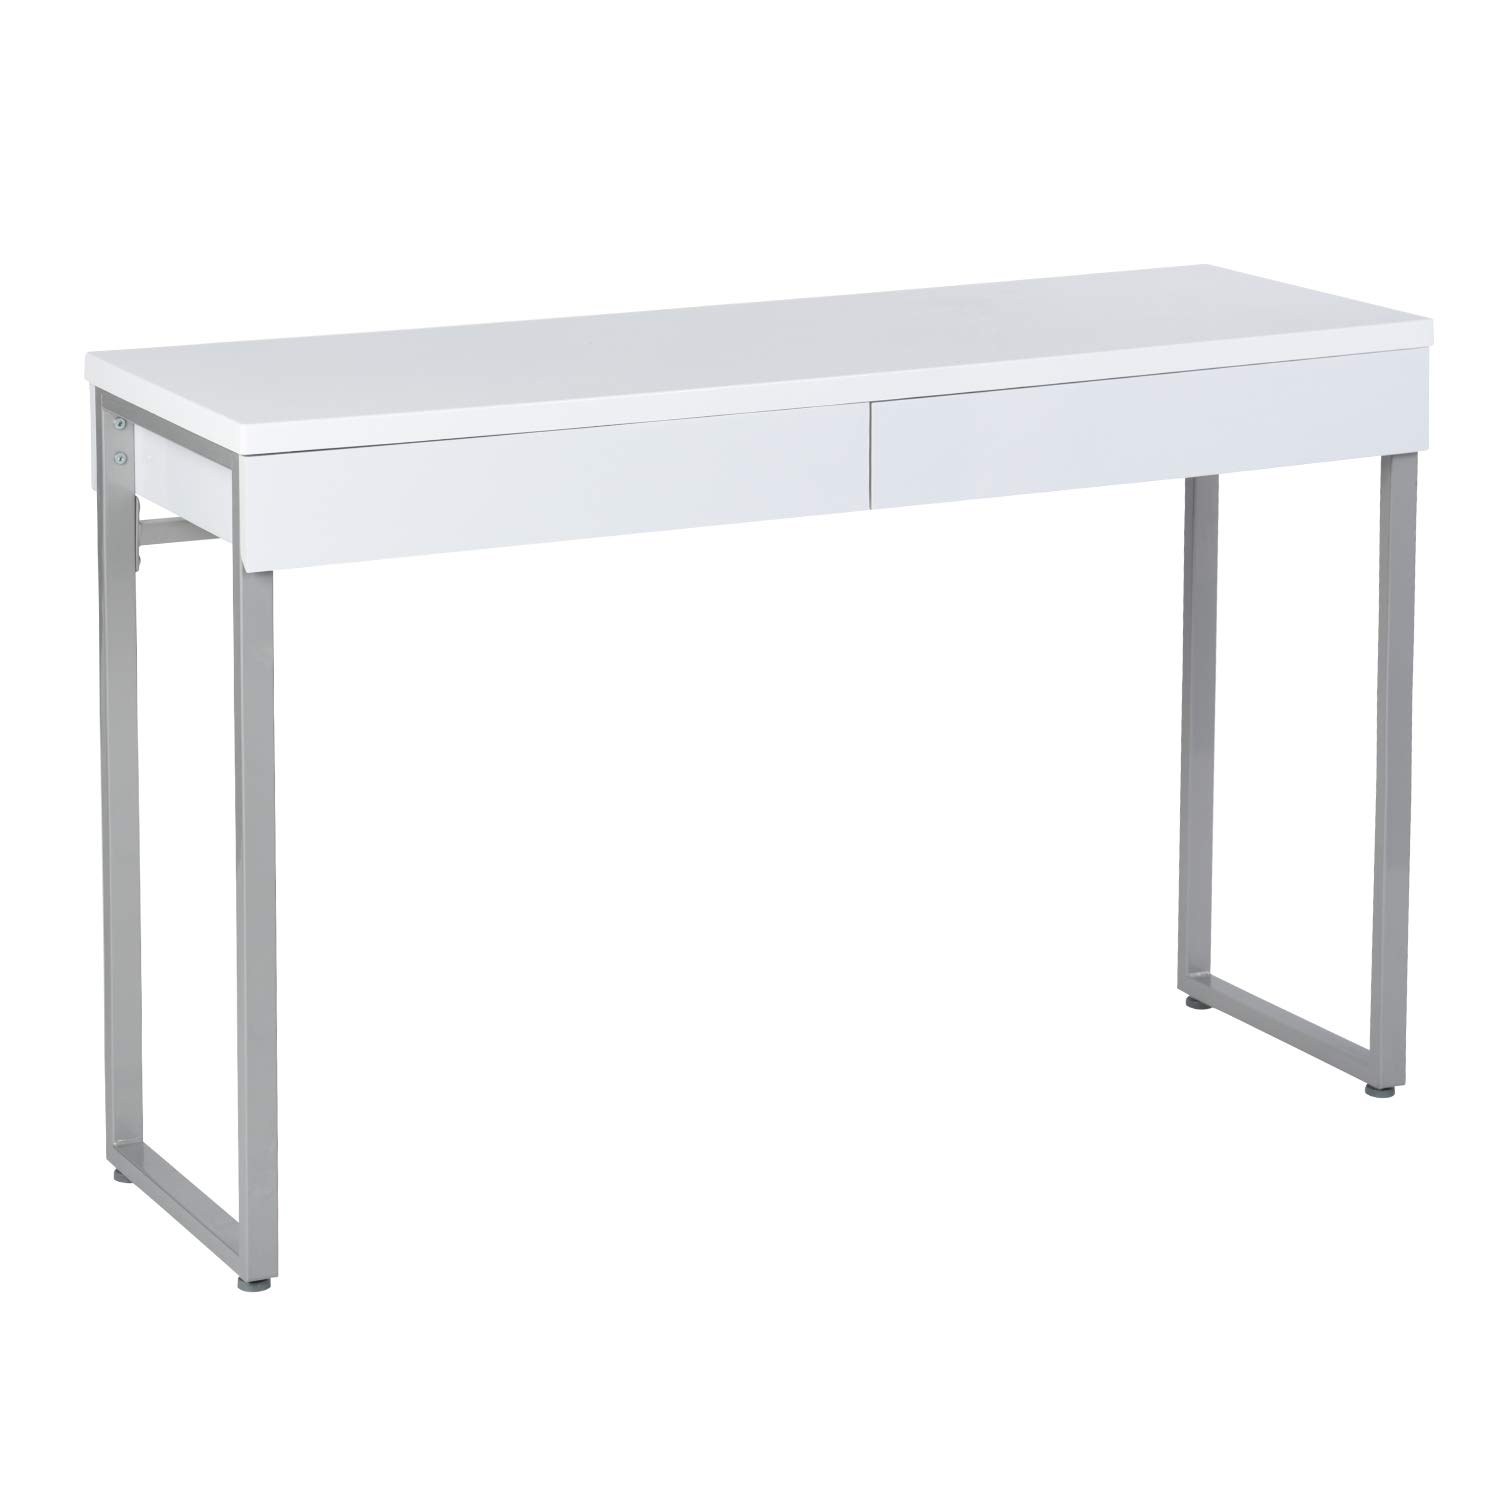 GreenForest Vanity Table 47'' Gloss White Console Table Computer Makeup Desk with 2 Small Drawers and Solid Metal Legs for Living Room Entryway Hallways by GreenForest